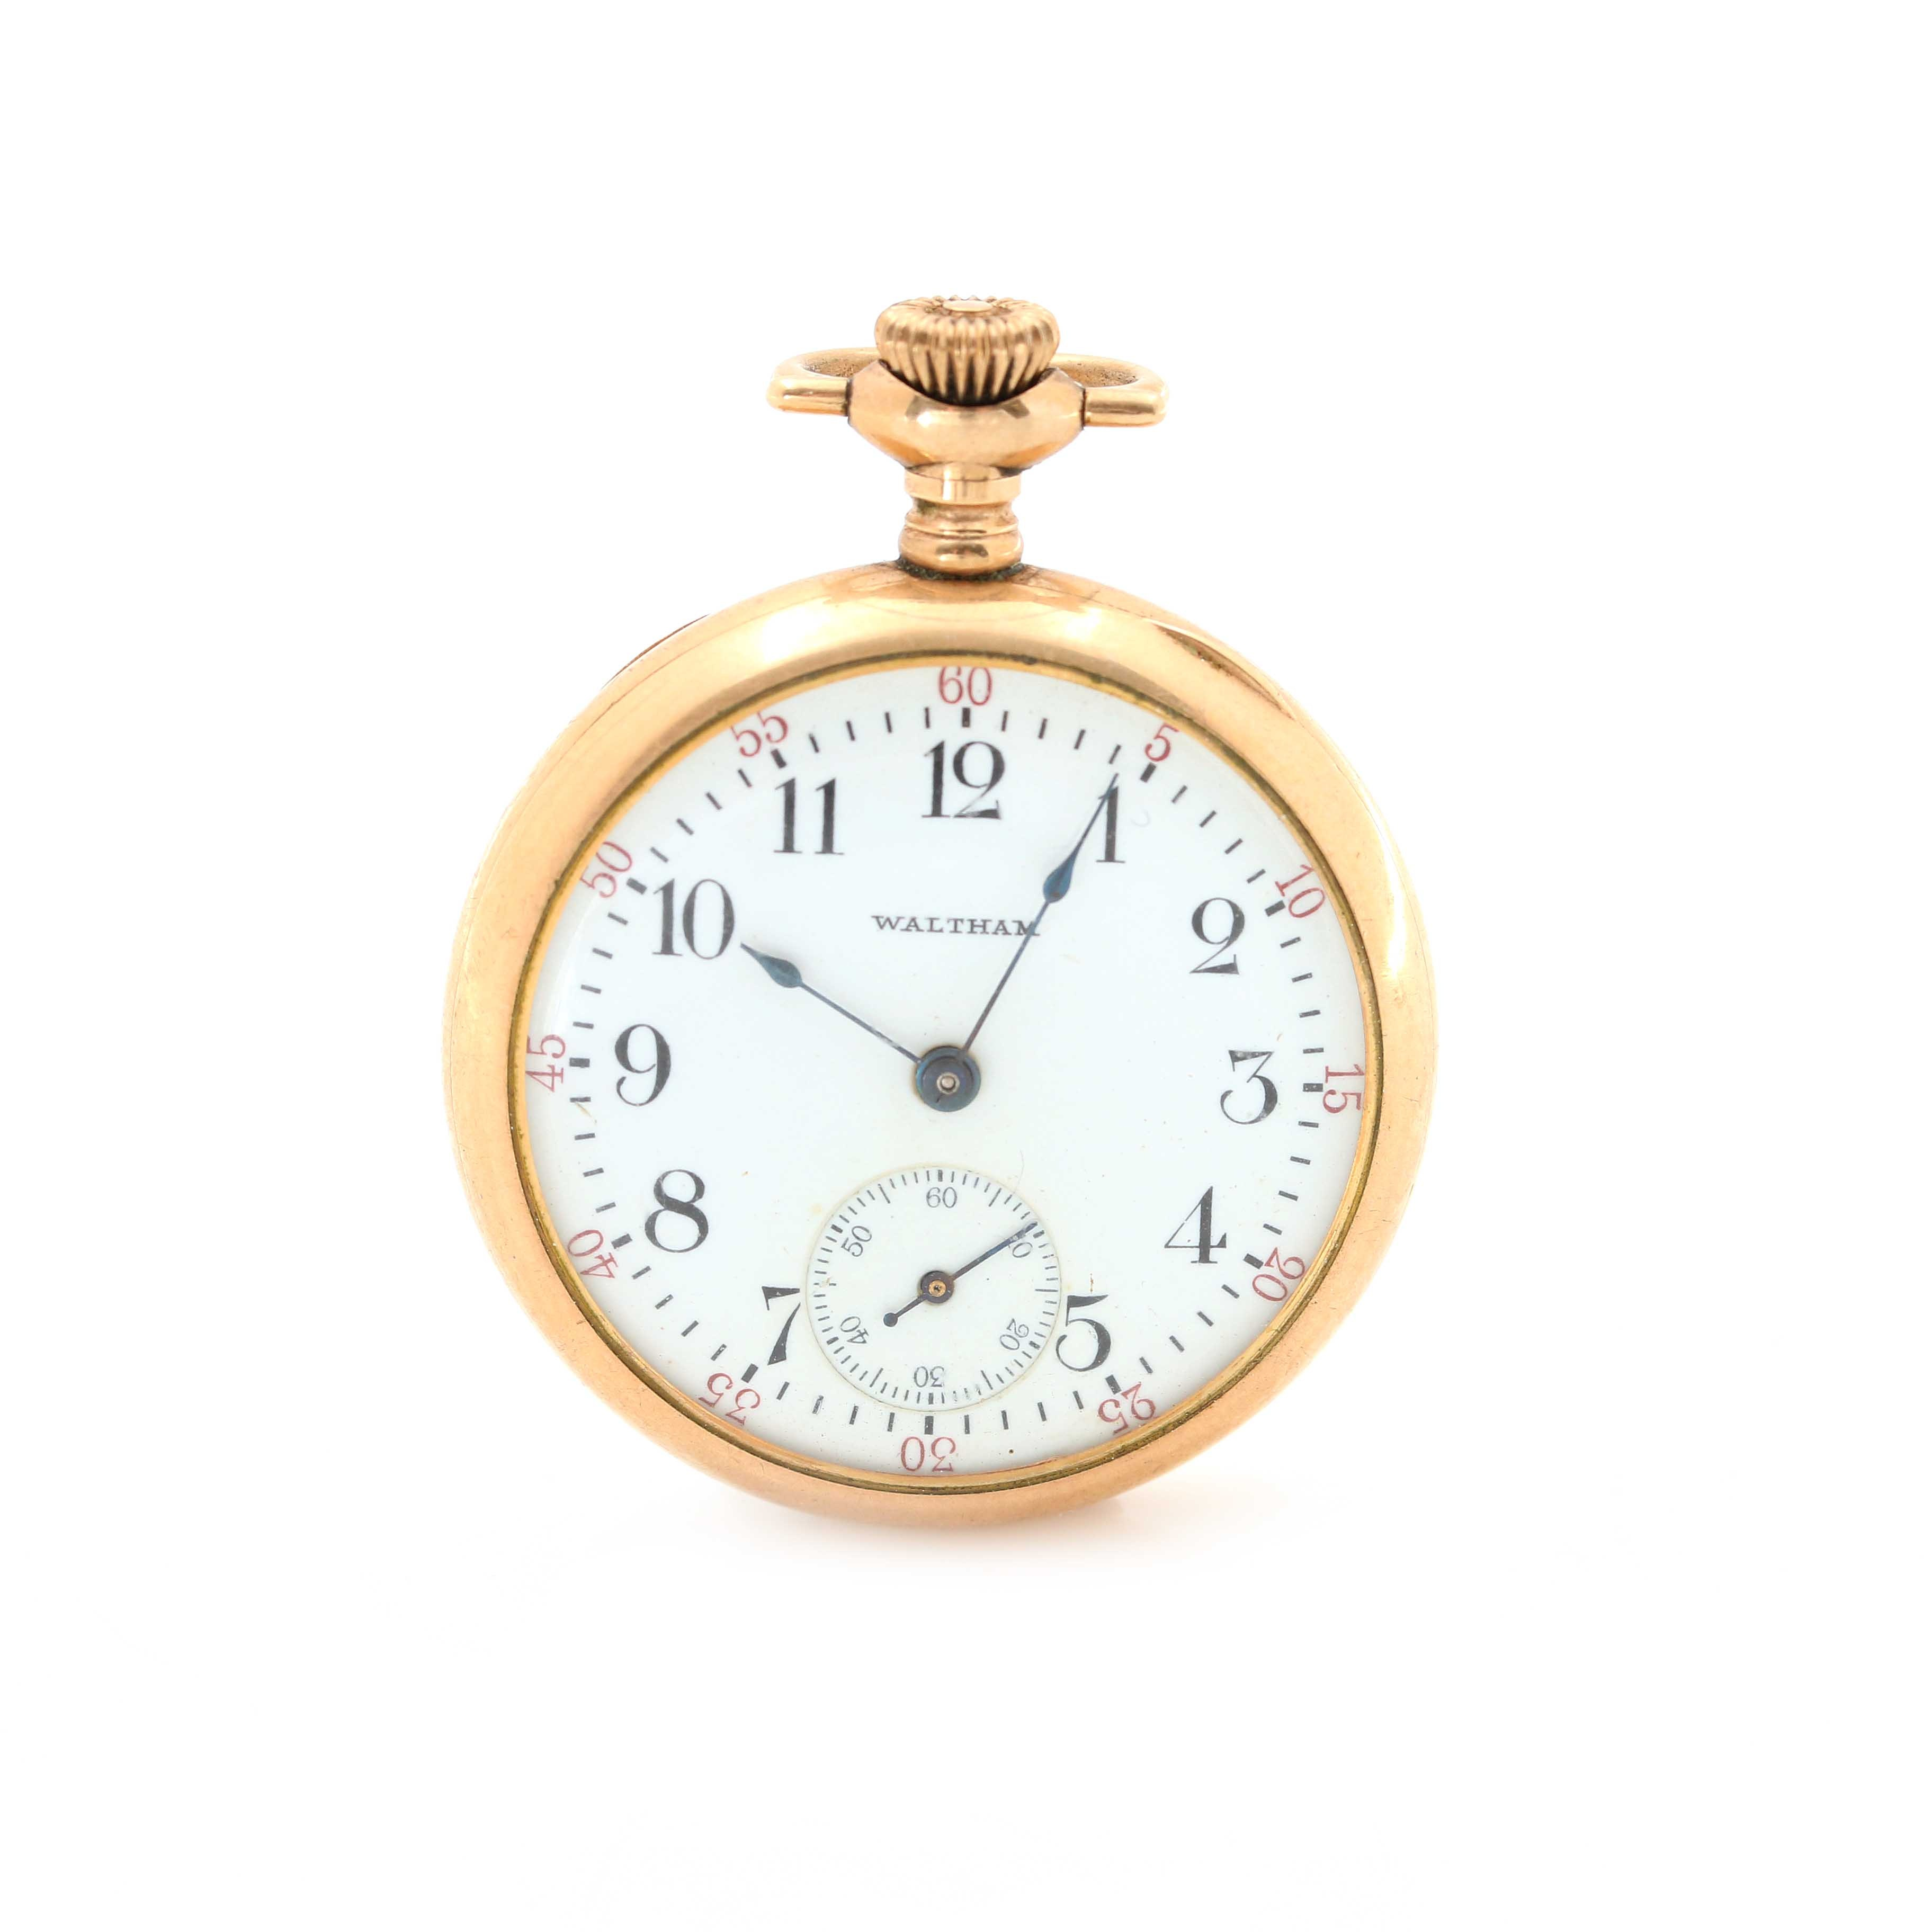 Antique Waltham Gold Filled Open Face Pocket Watch